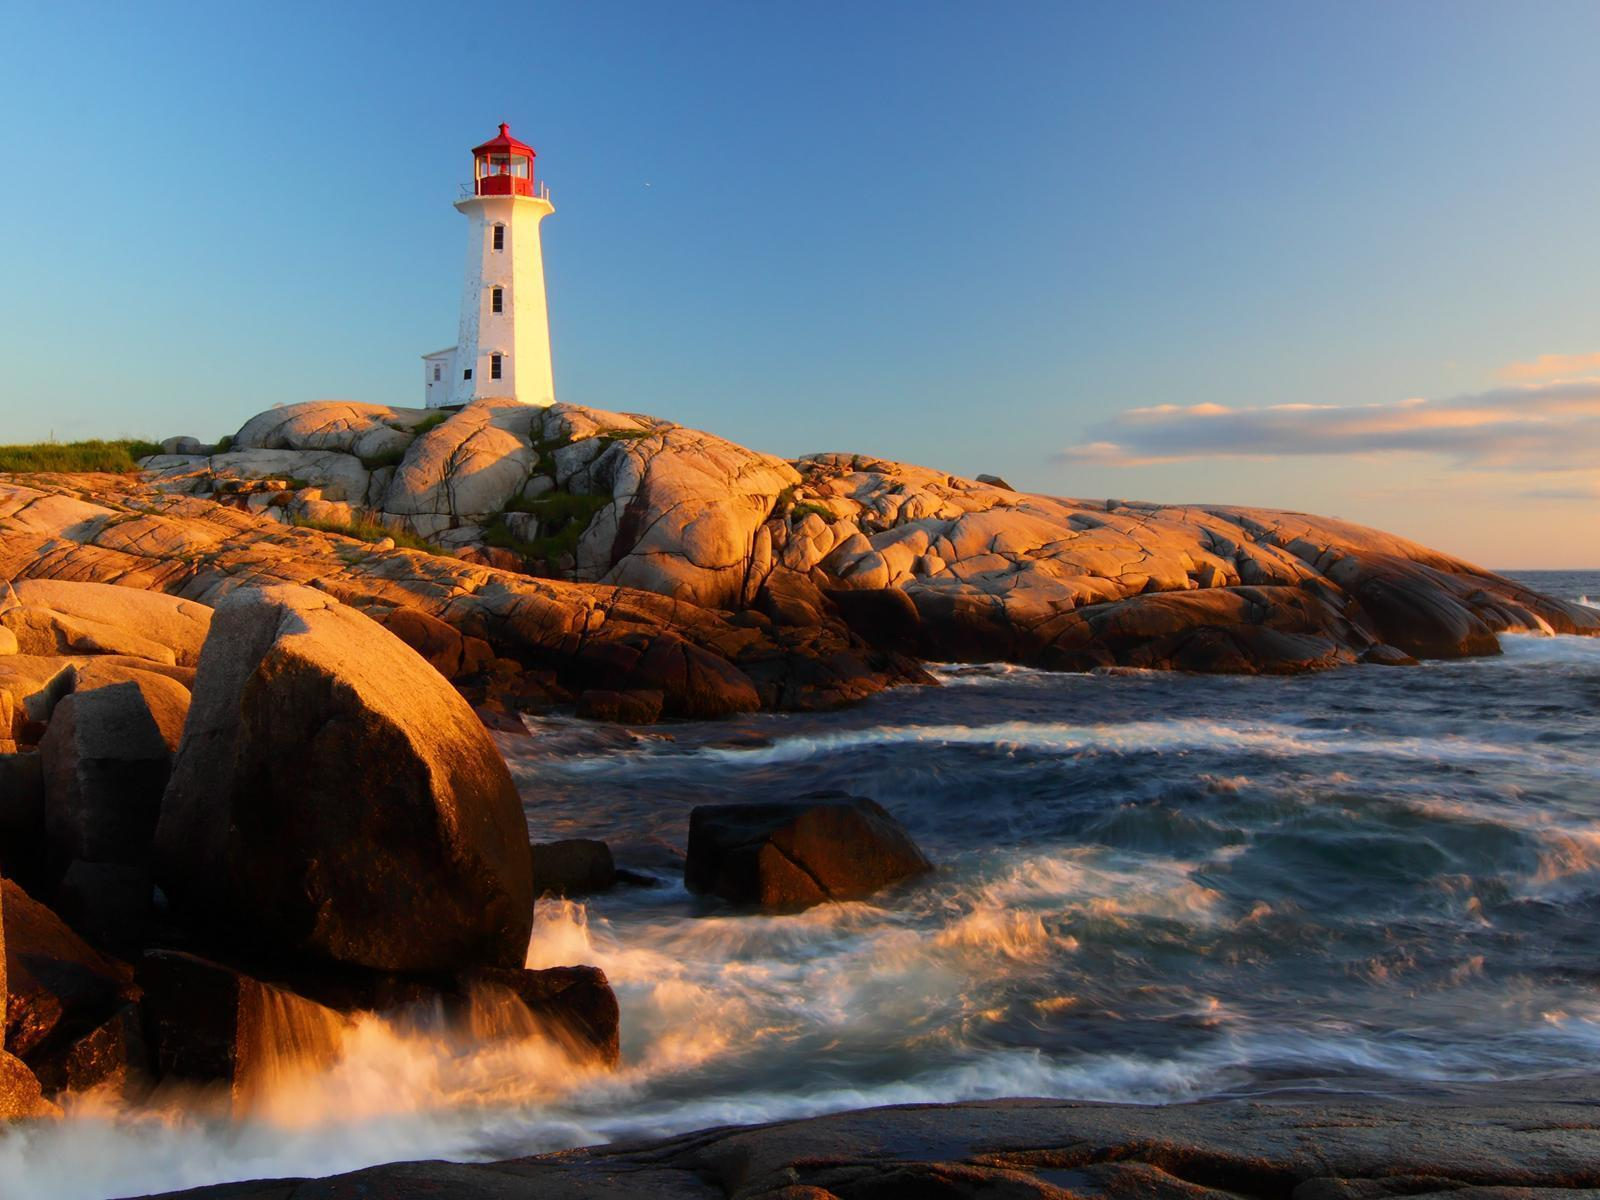 Little Lighthouse wallpaper – The Republican Agenda? America be ...